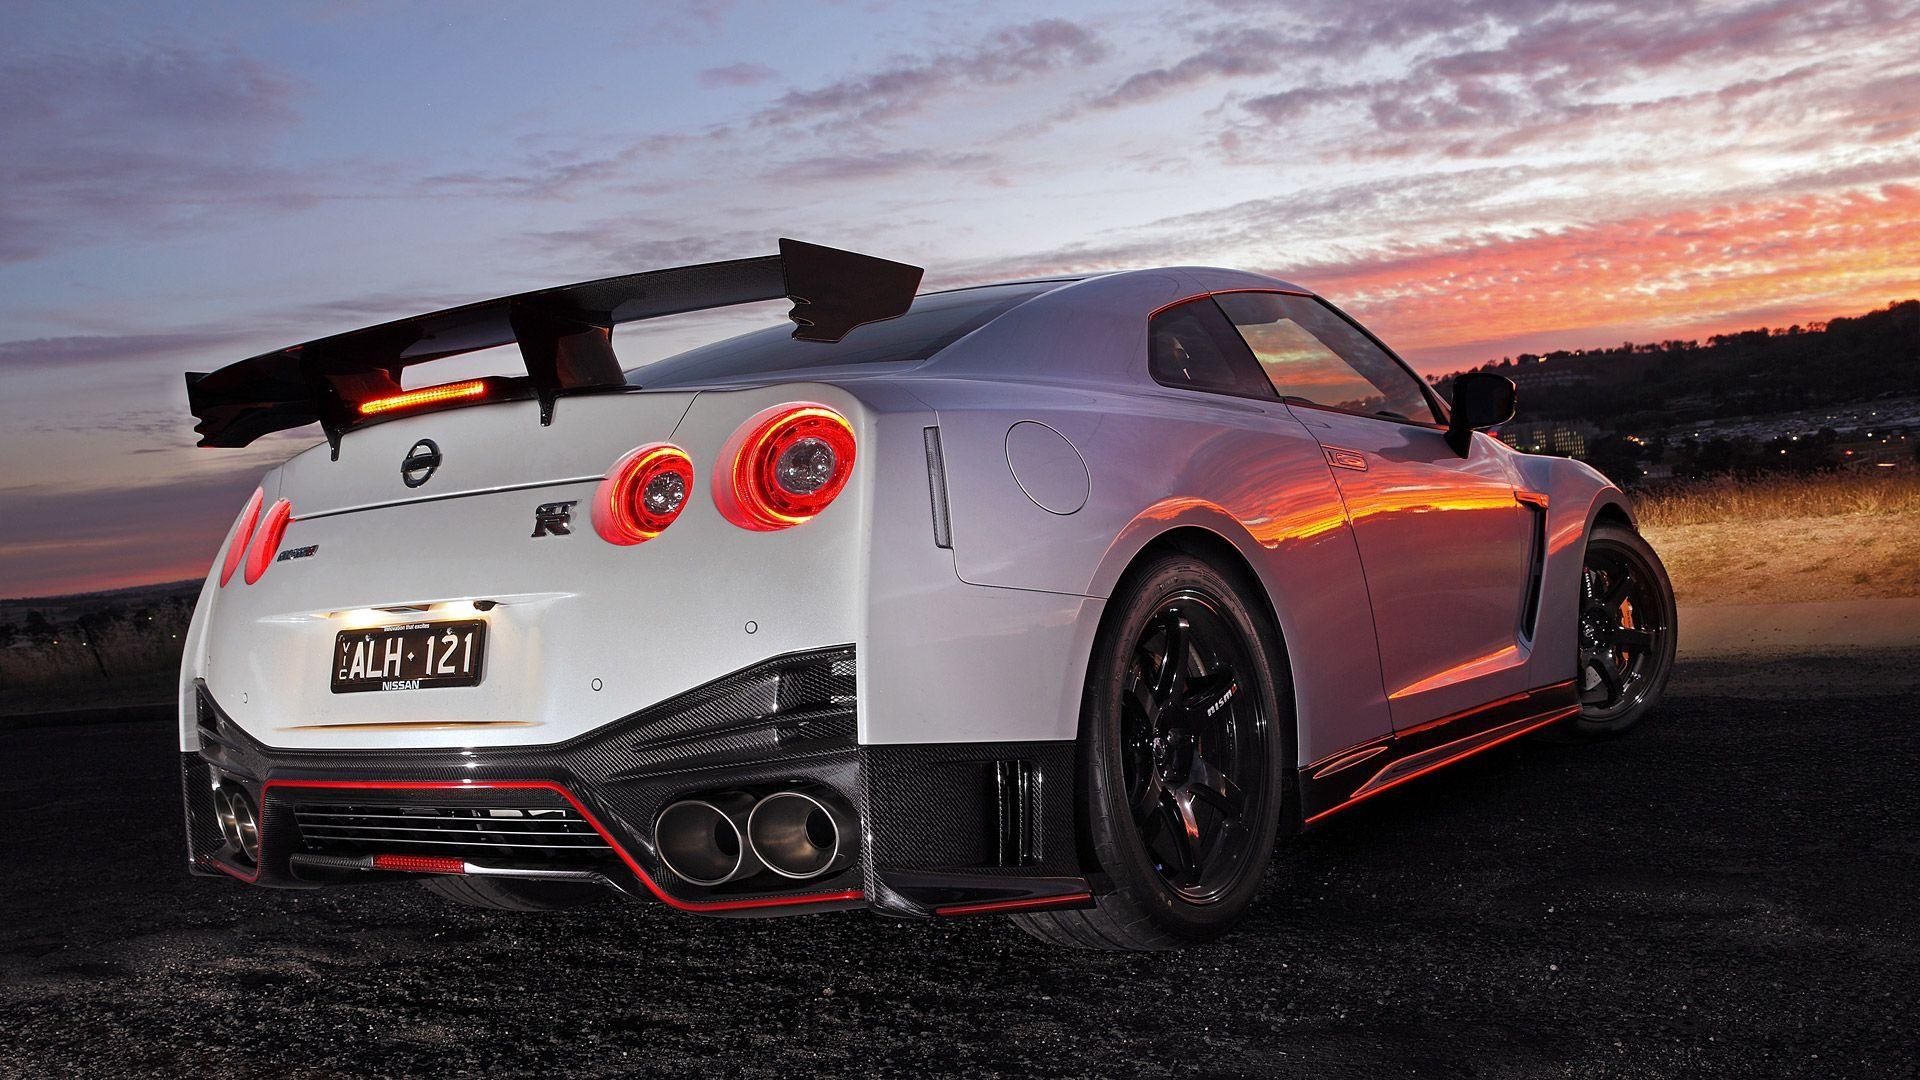 2017 Nissan Gt R Nismo Wallpapers Hd Images Wsupercars